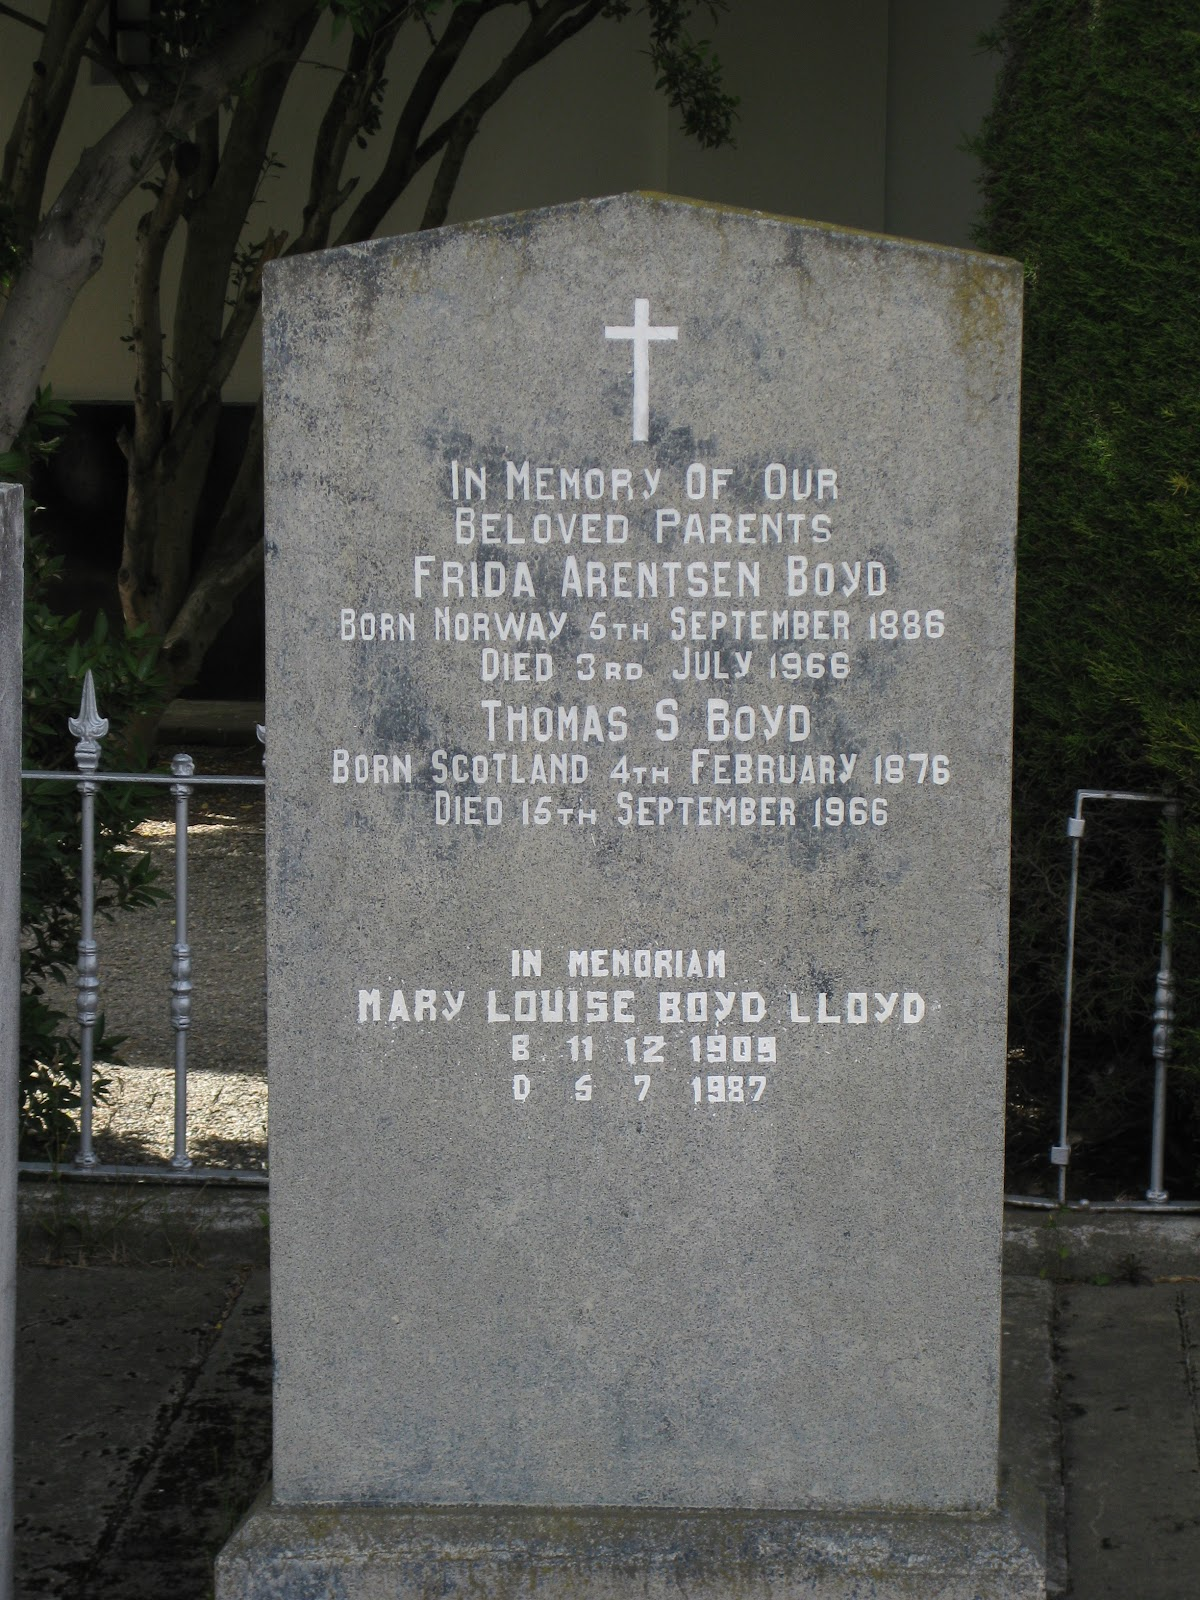 Punta Arenas Cemetery - notice the origins of the couple, and the use of English